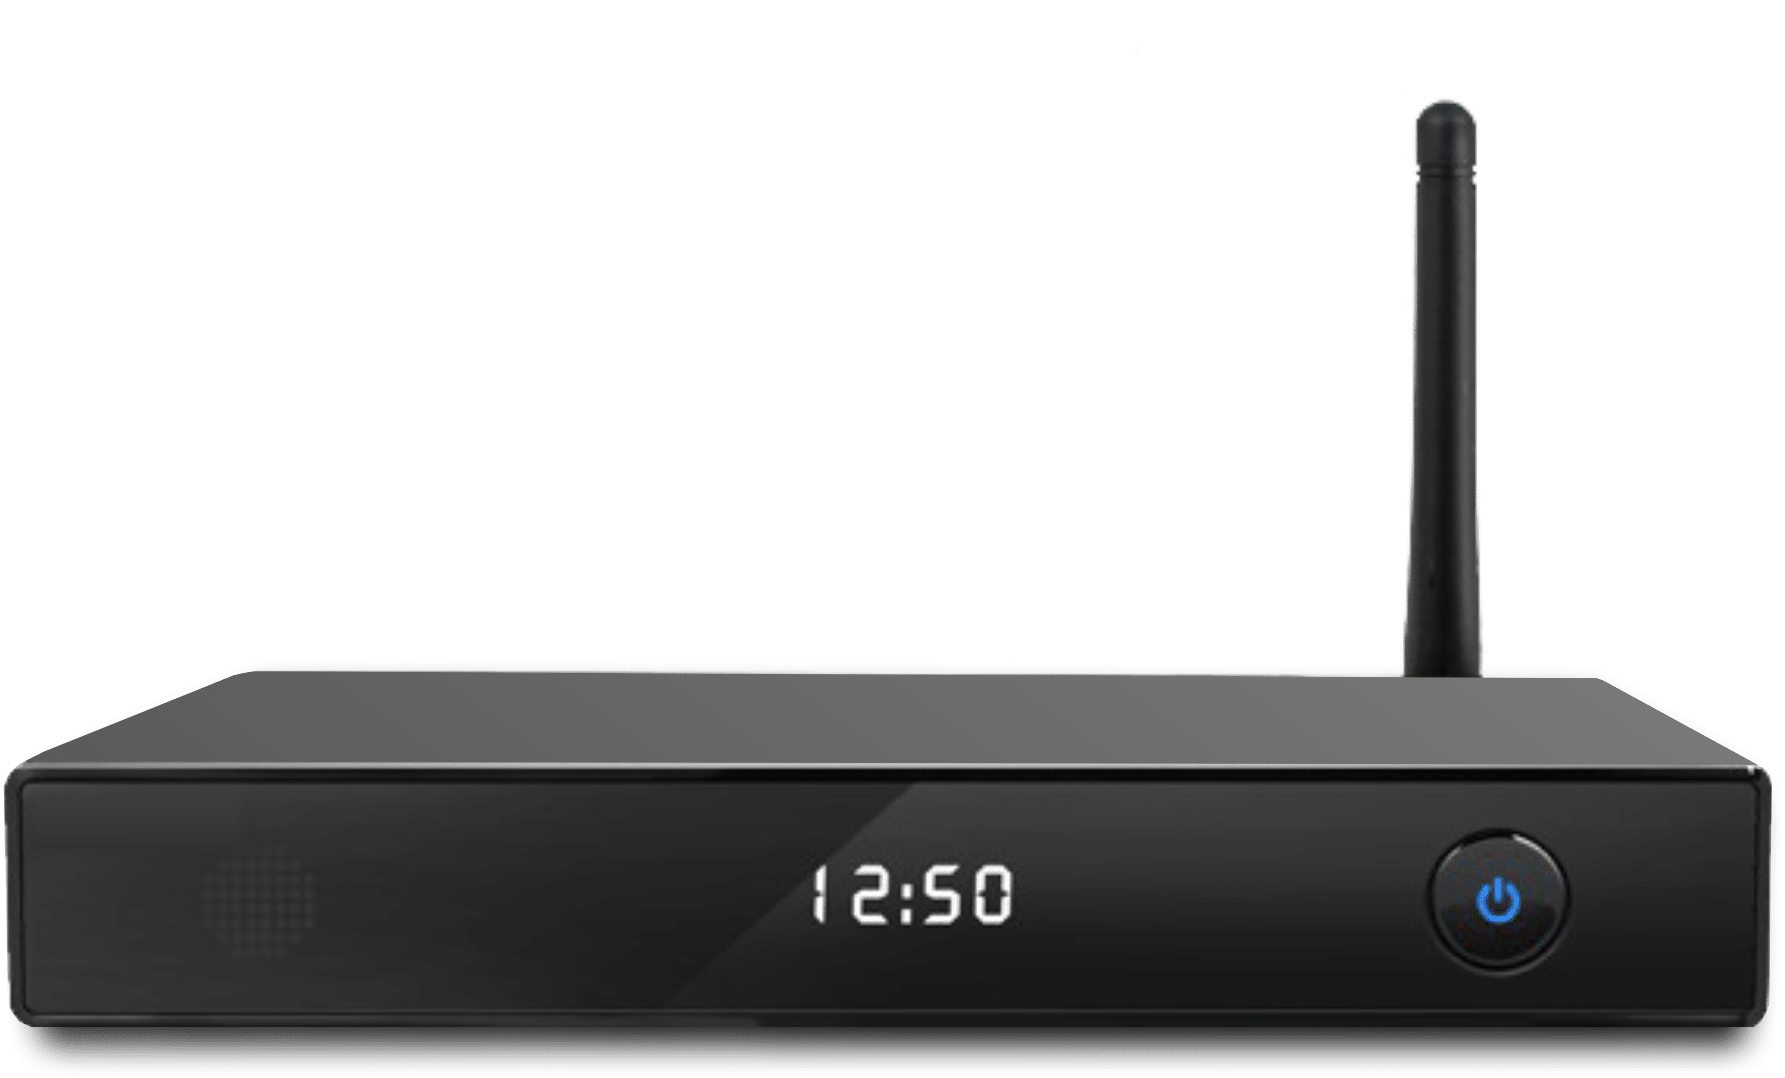 DroidBOX M5 (Refurbished) Android Set Top Box front view 2